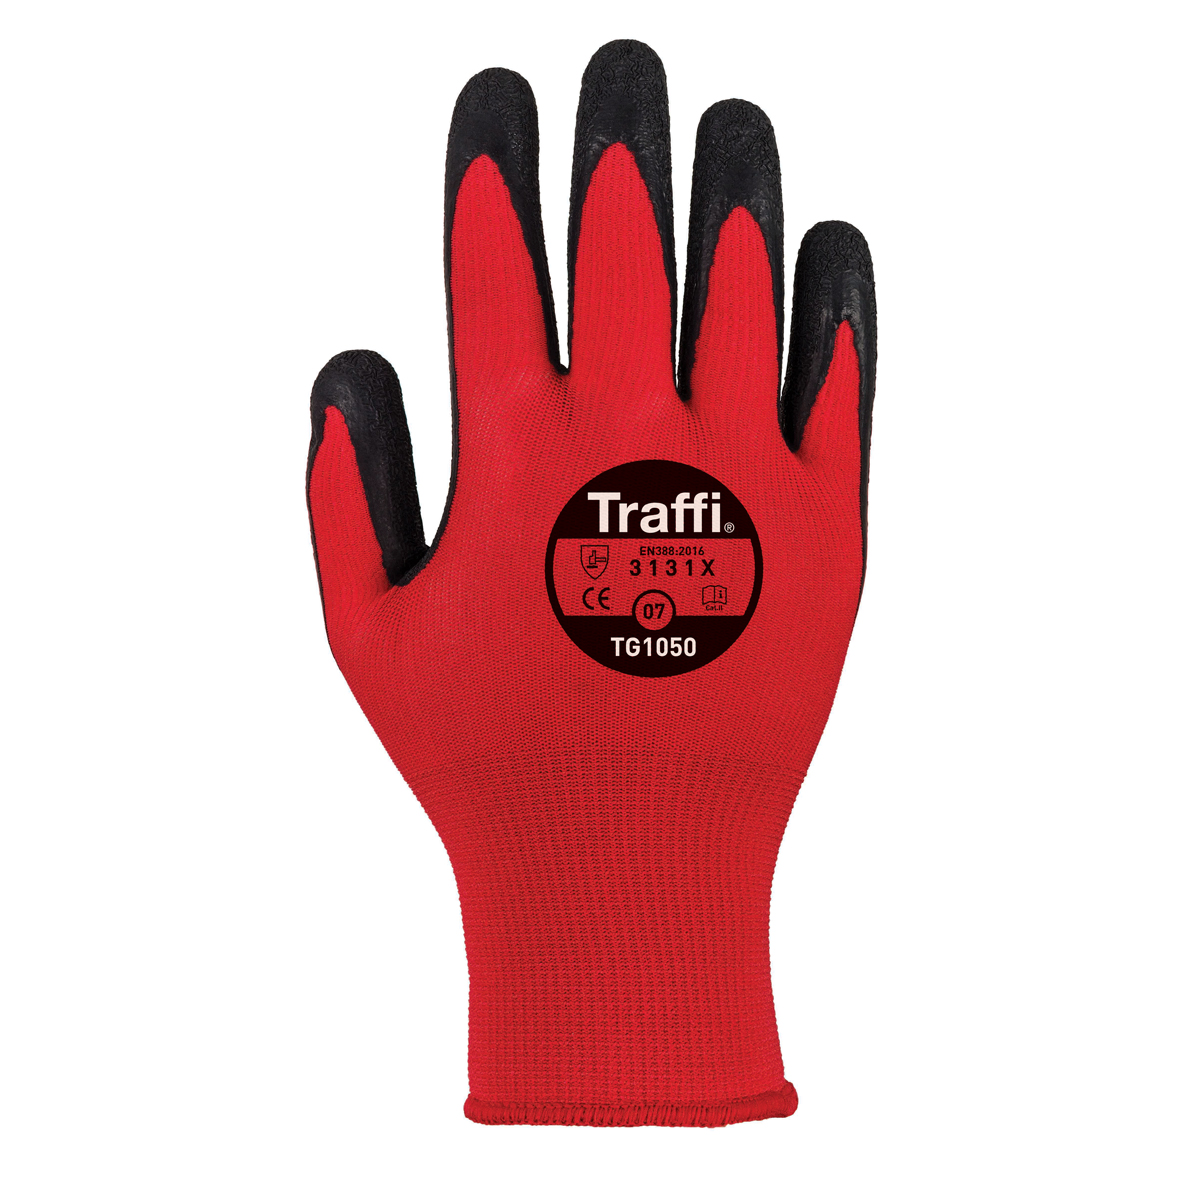 Size 7 Centric Cut 1 Red Nylon Shell X-dura Latex Palm Coating (10 Pack)